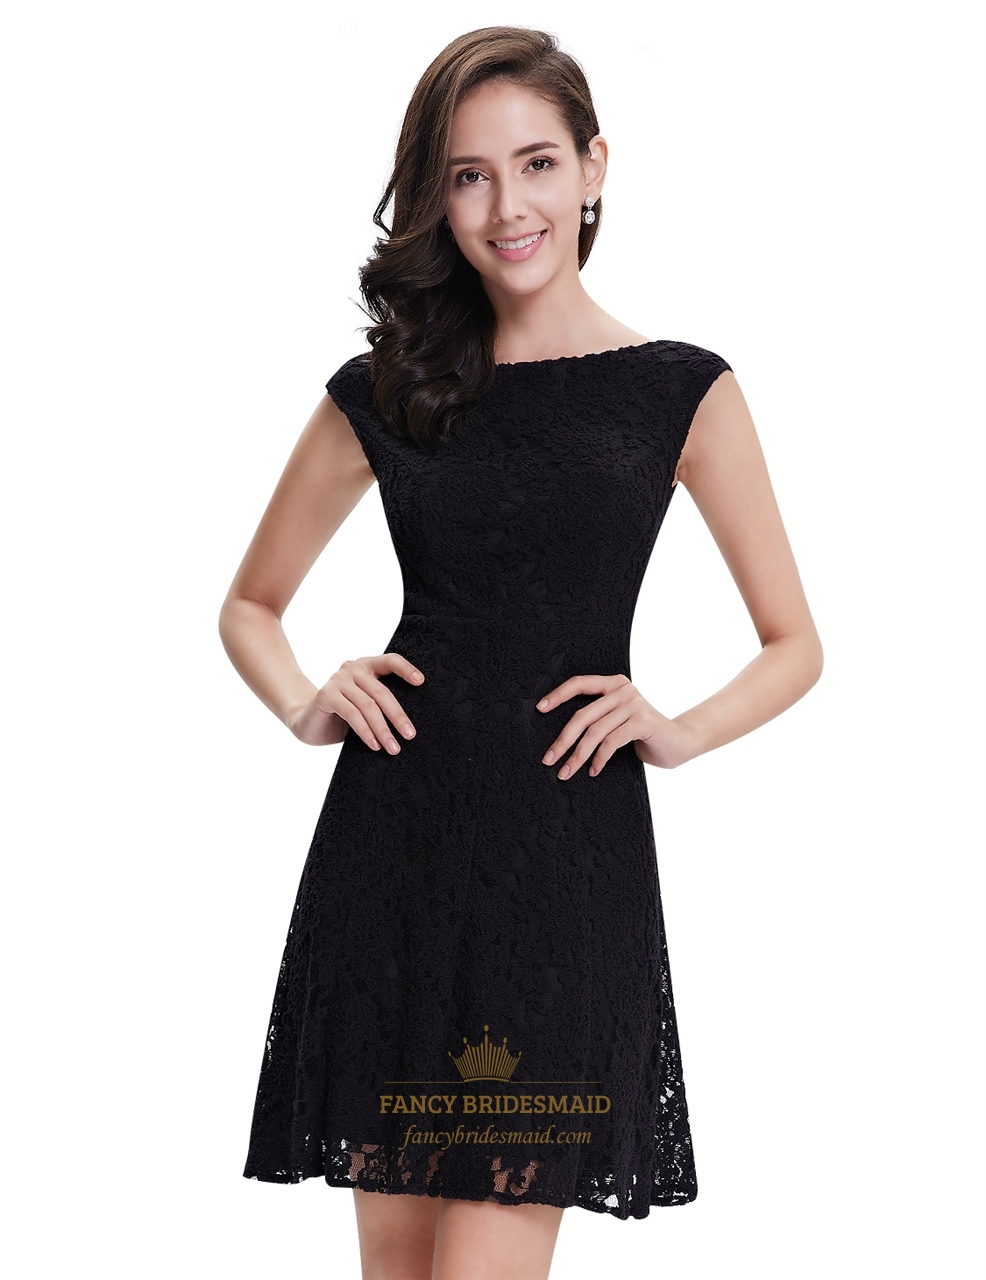 Awesome Cap Sleeves Black Lace Short Semi Formal Dresses Cap Sleeves Formal Dresses Short Pump Va Formal Dresses Short Blue Black Lace Short Semi Formal Dresses wedding dress Formal Dresses Short